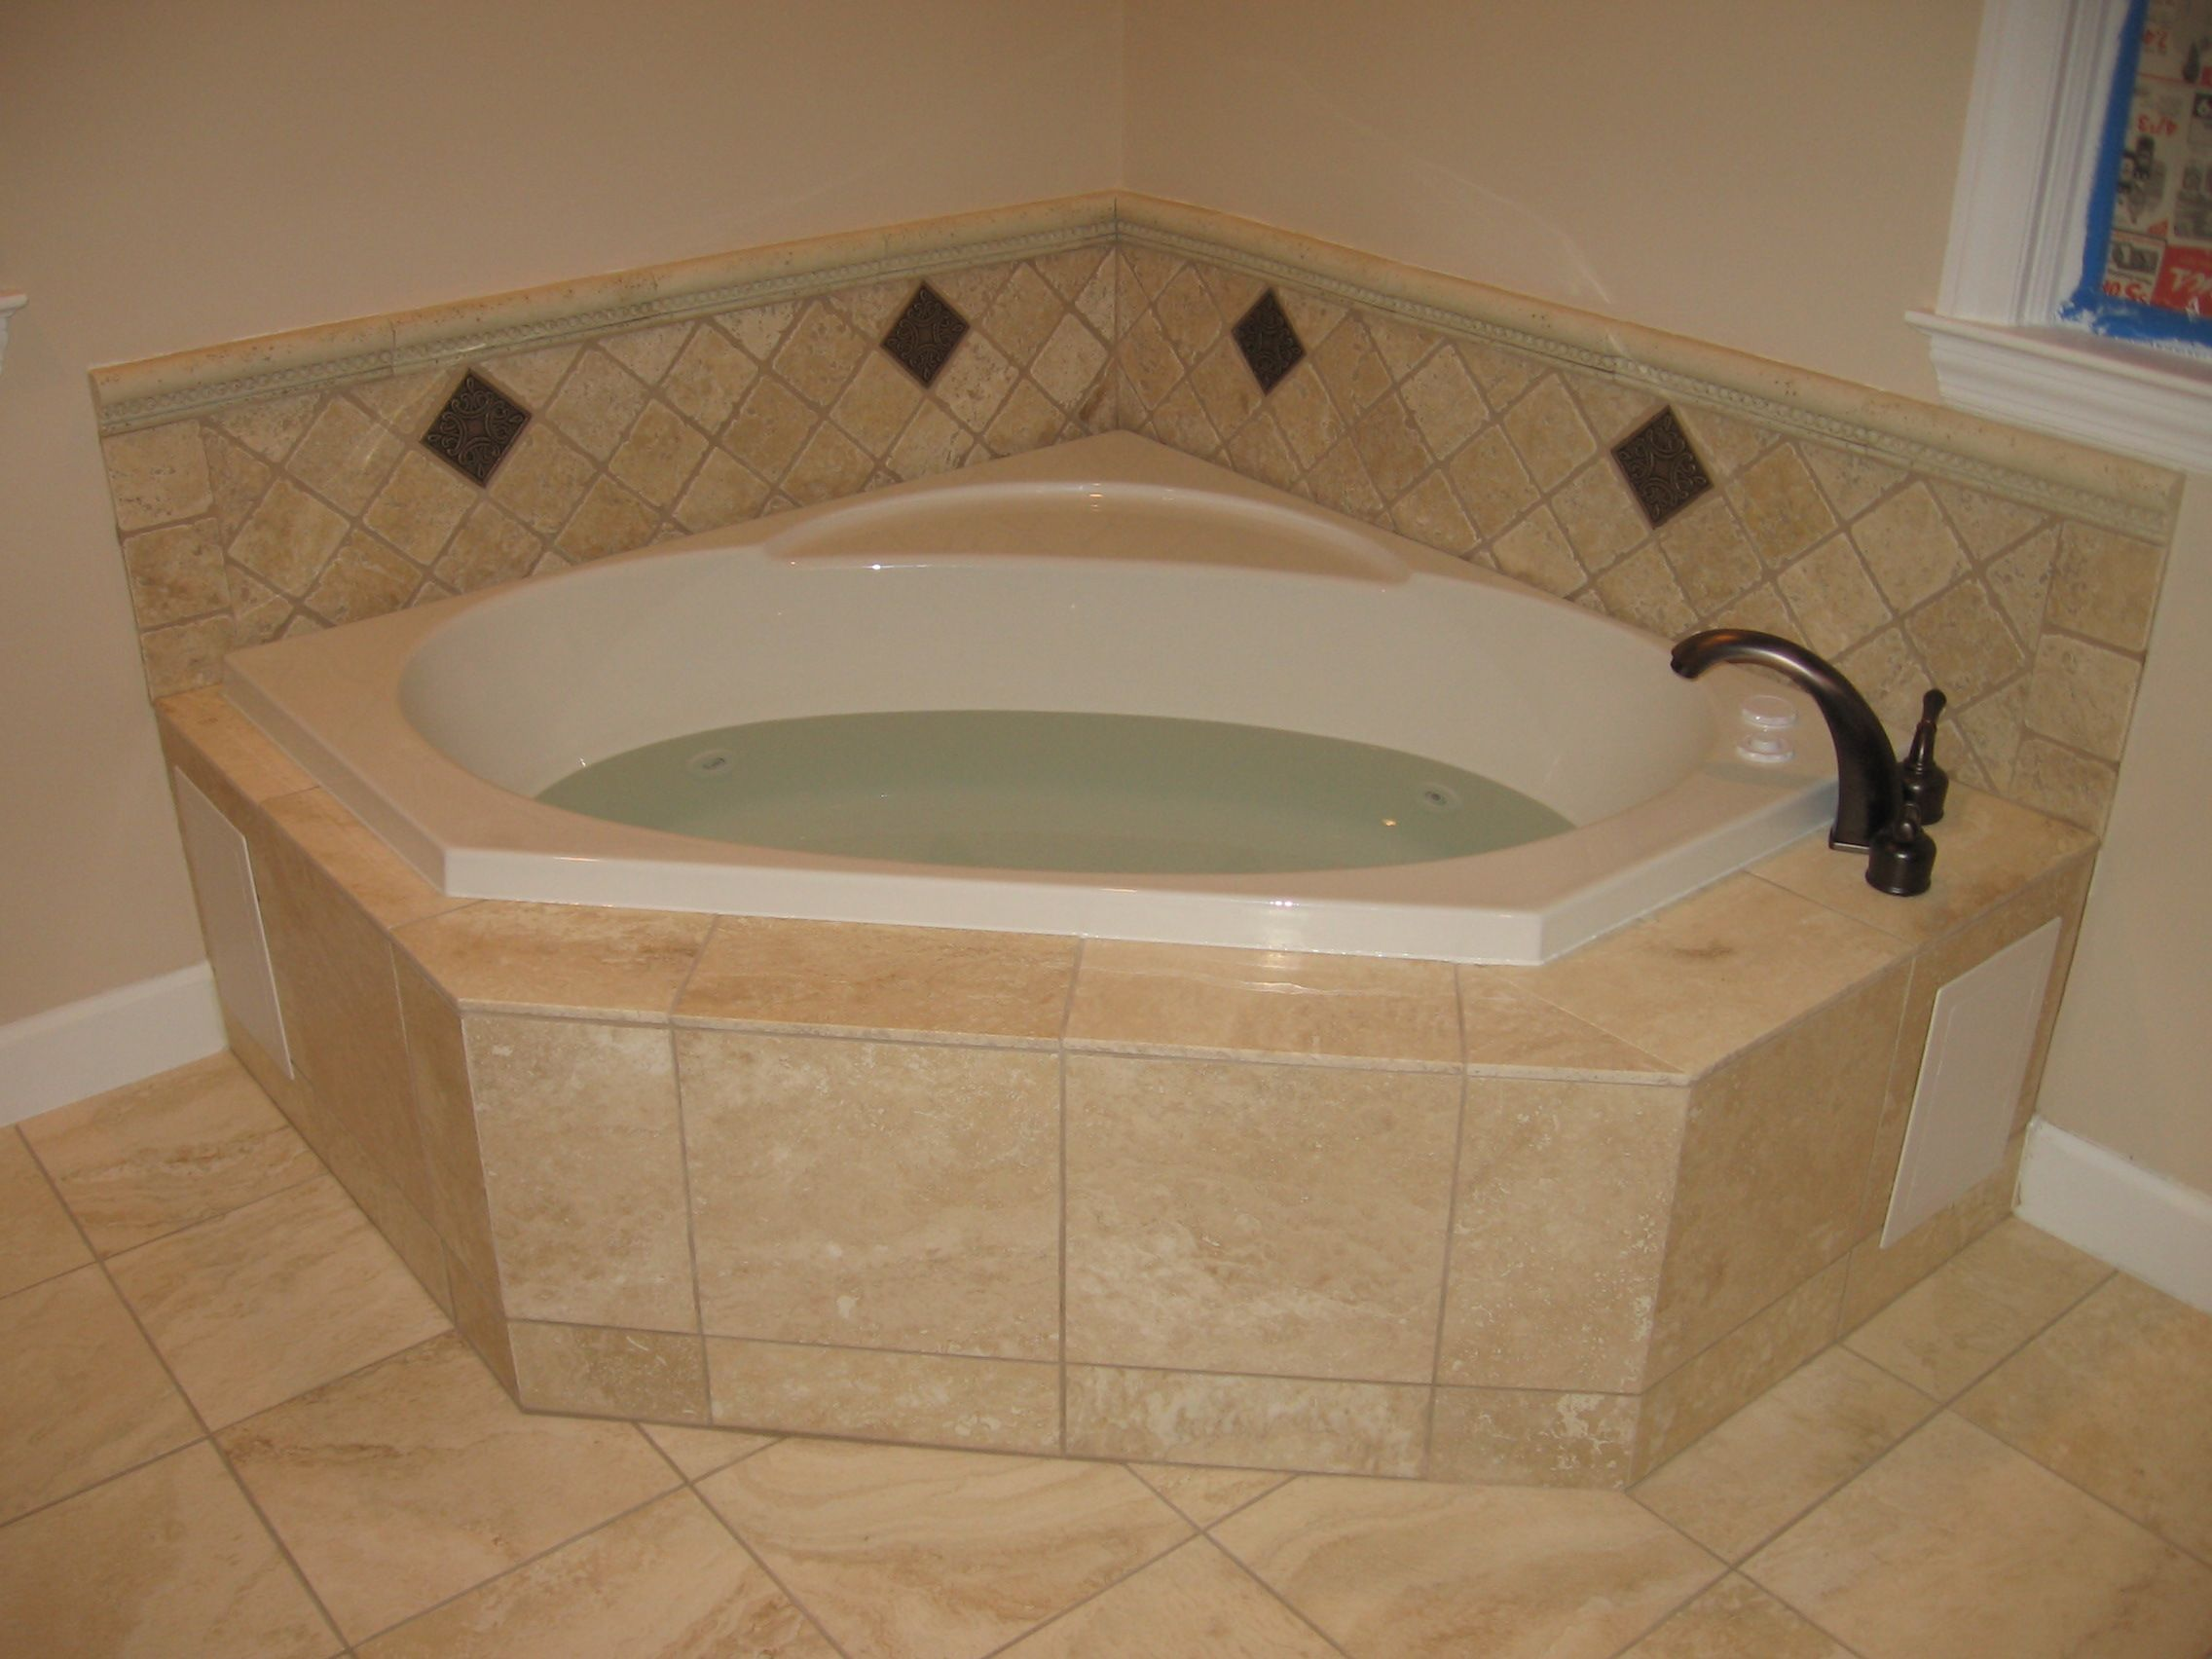 Beau 15 Interesting Whirlpool Corner Bathtub Picture Ideas